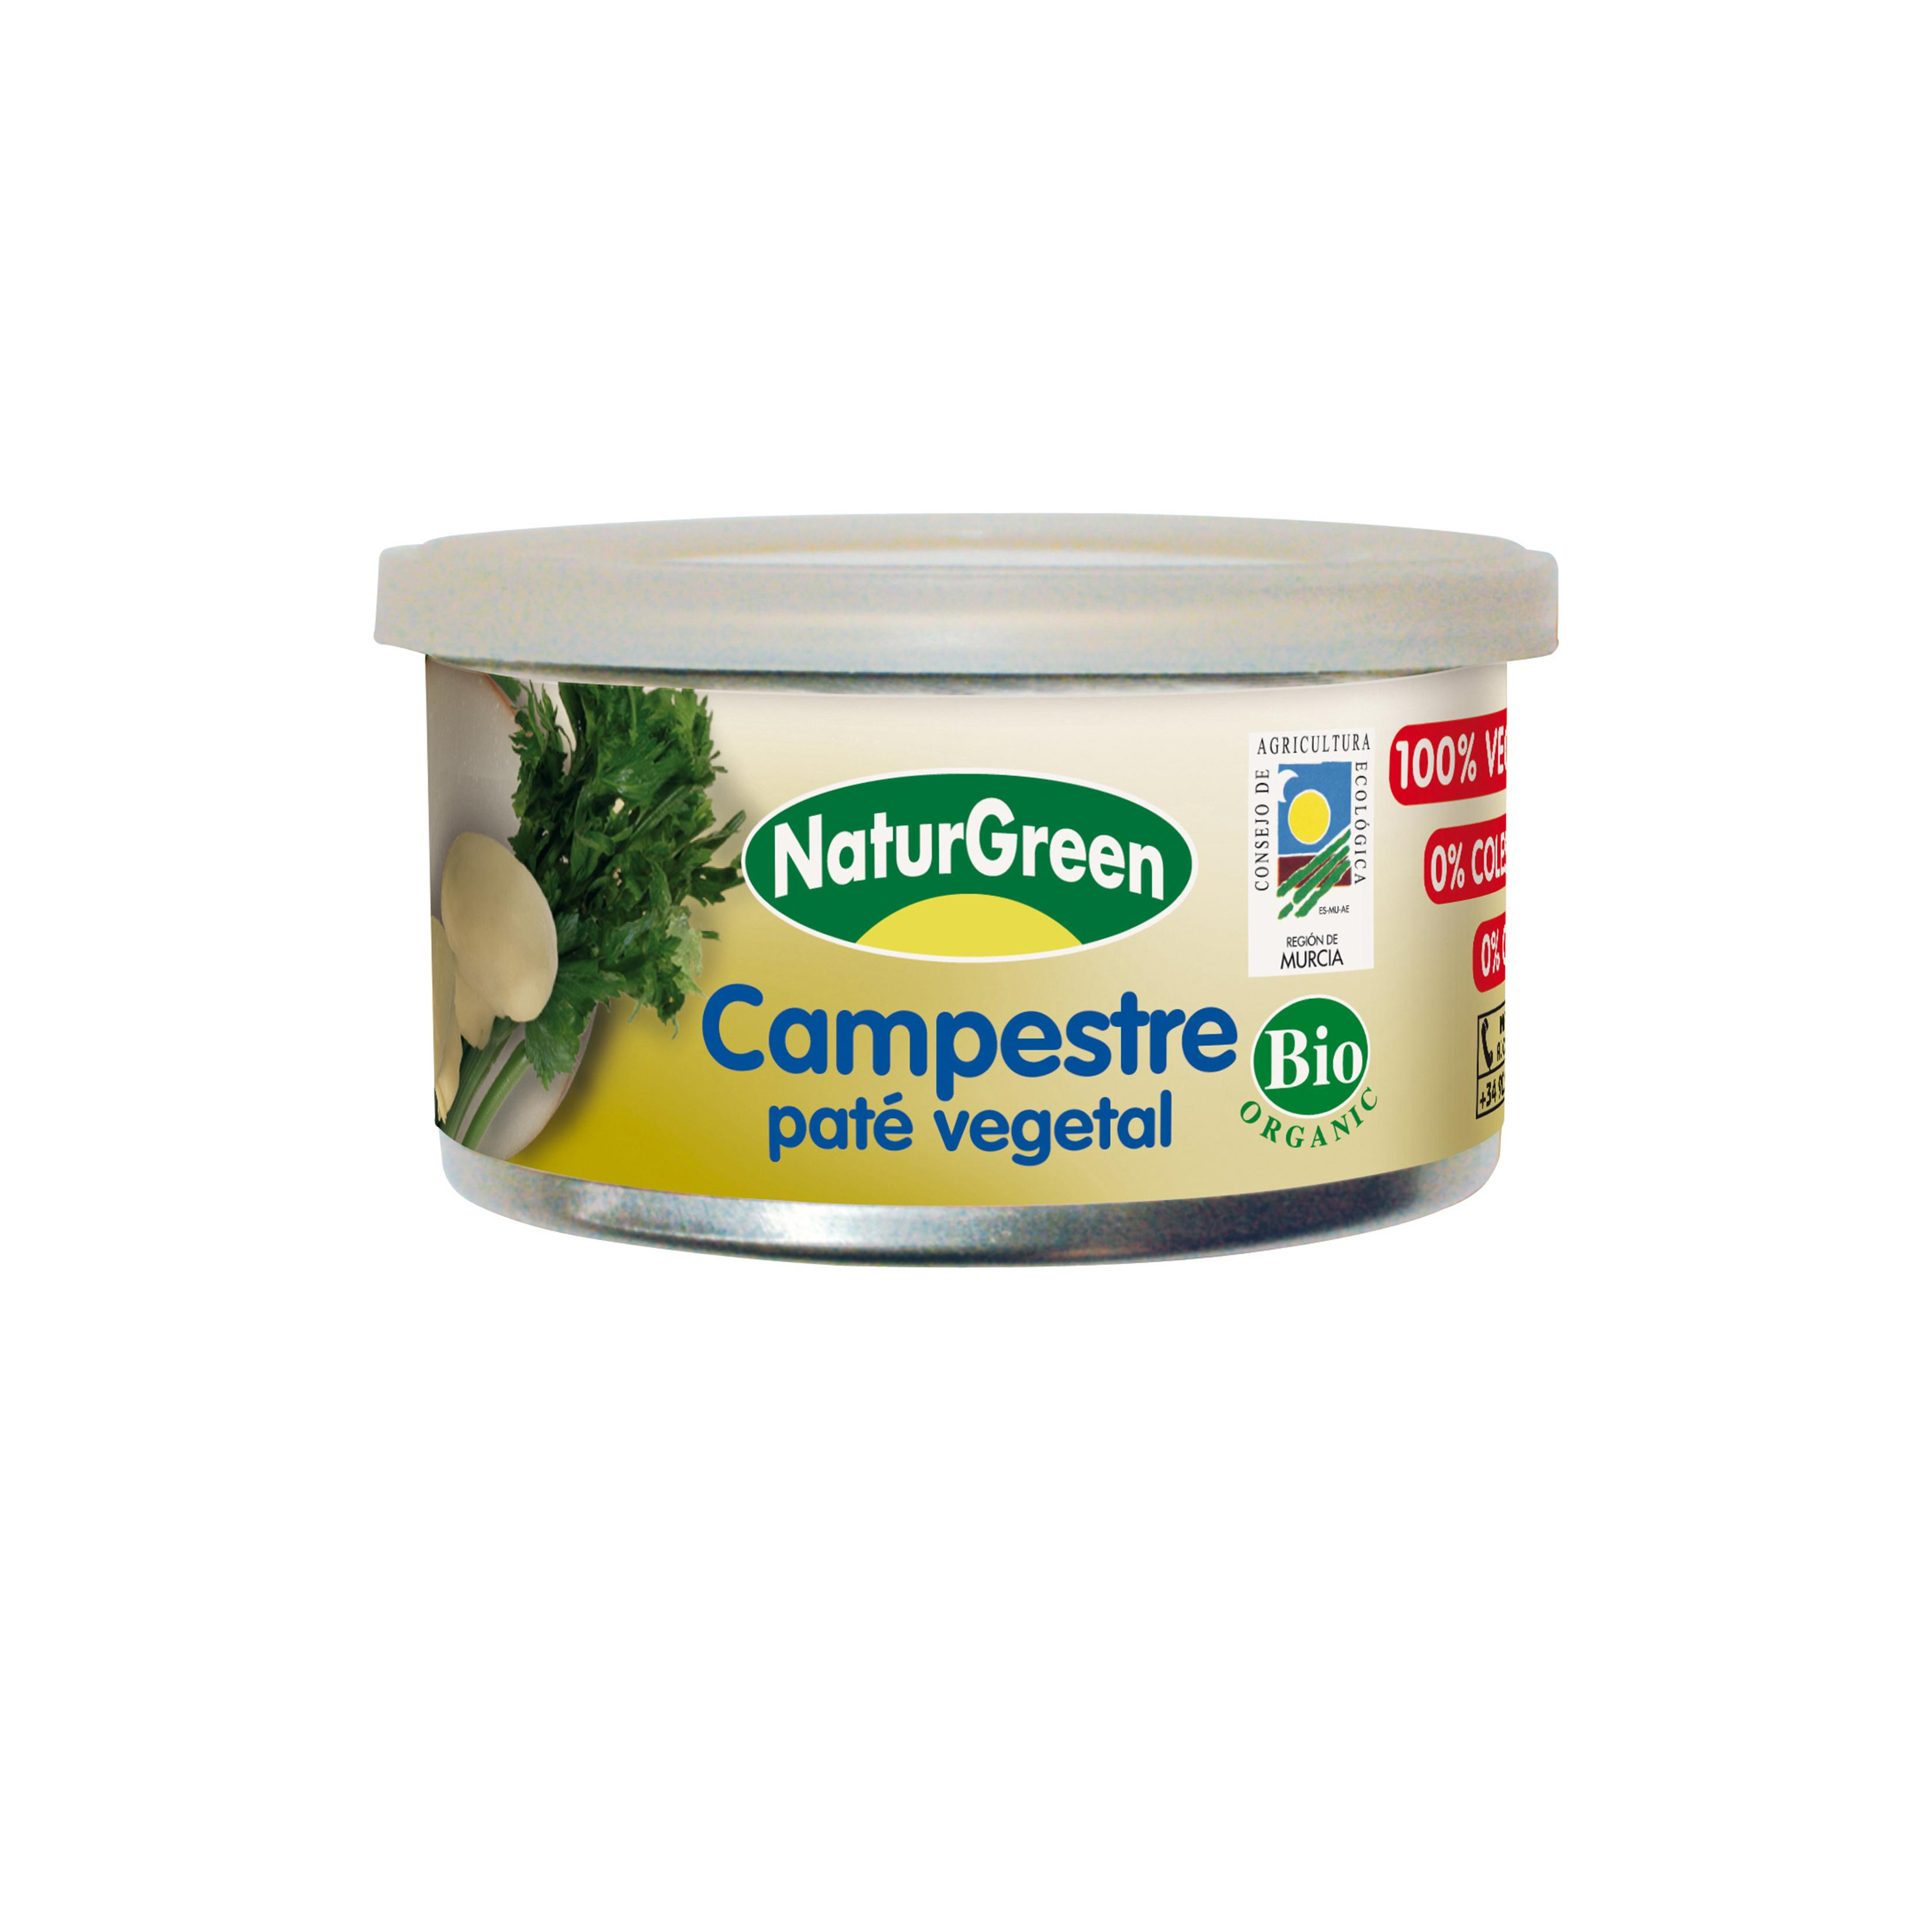 img/naturgreen-pate-countrysidecampestre-bio-125-g.png.jpg